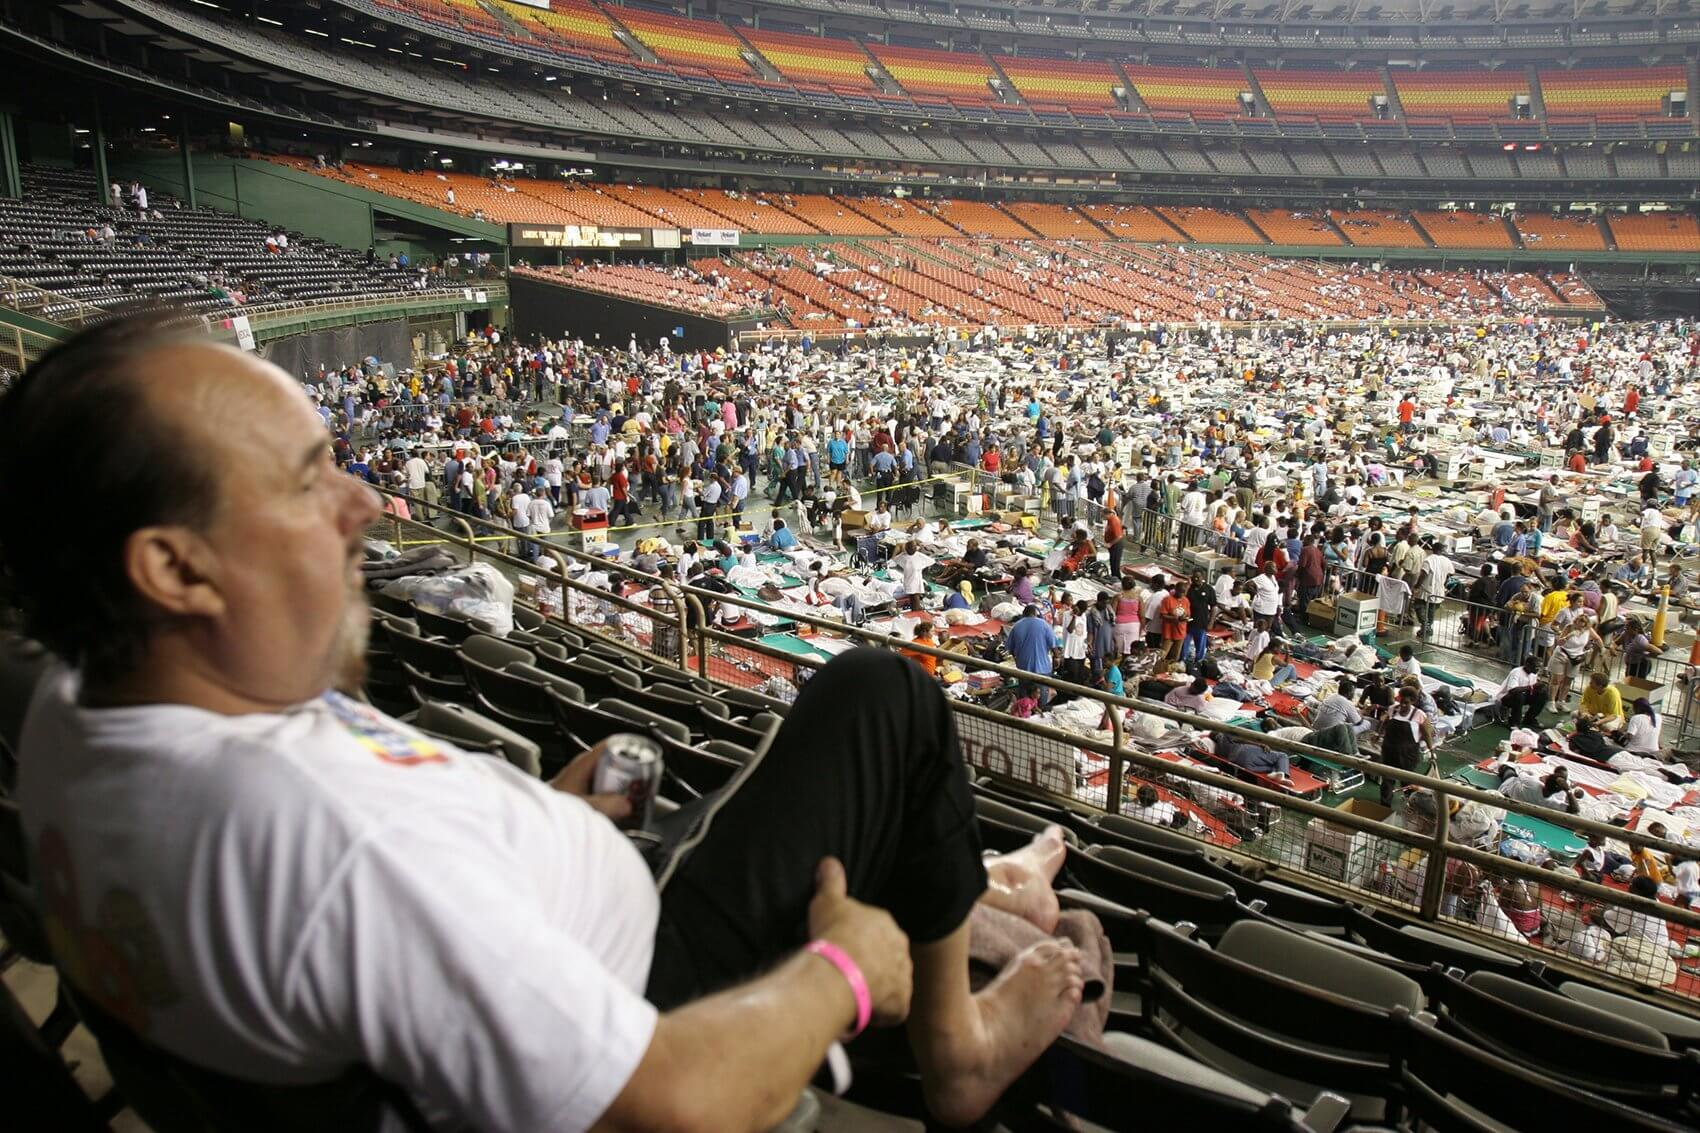 An evacuee surveys the crowd from the seats at the Astrodome. (Photo courtesy Texas Children's Hospital)